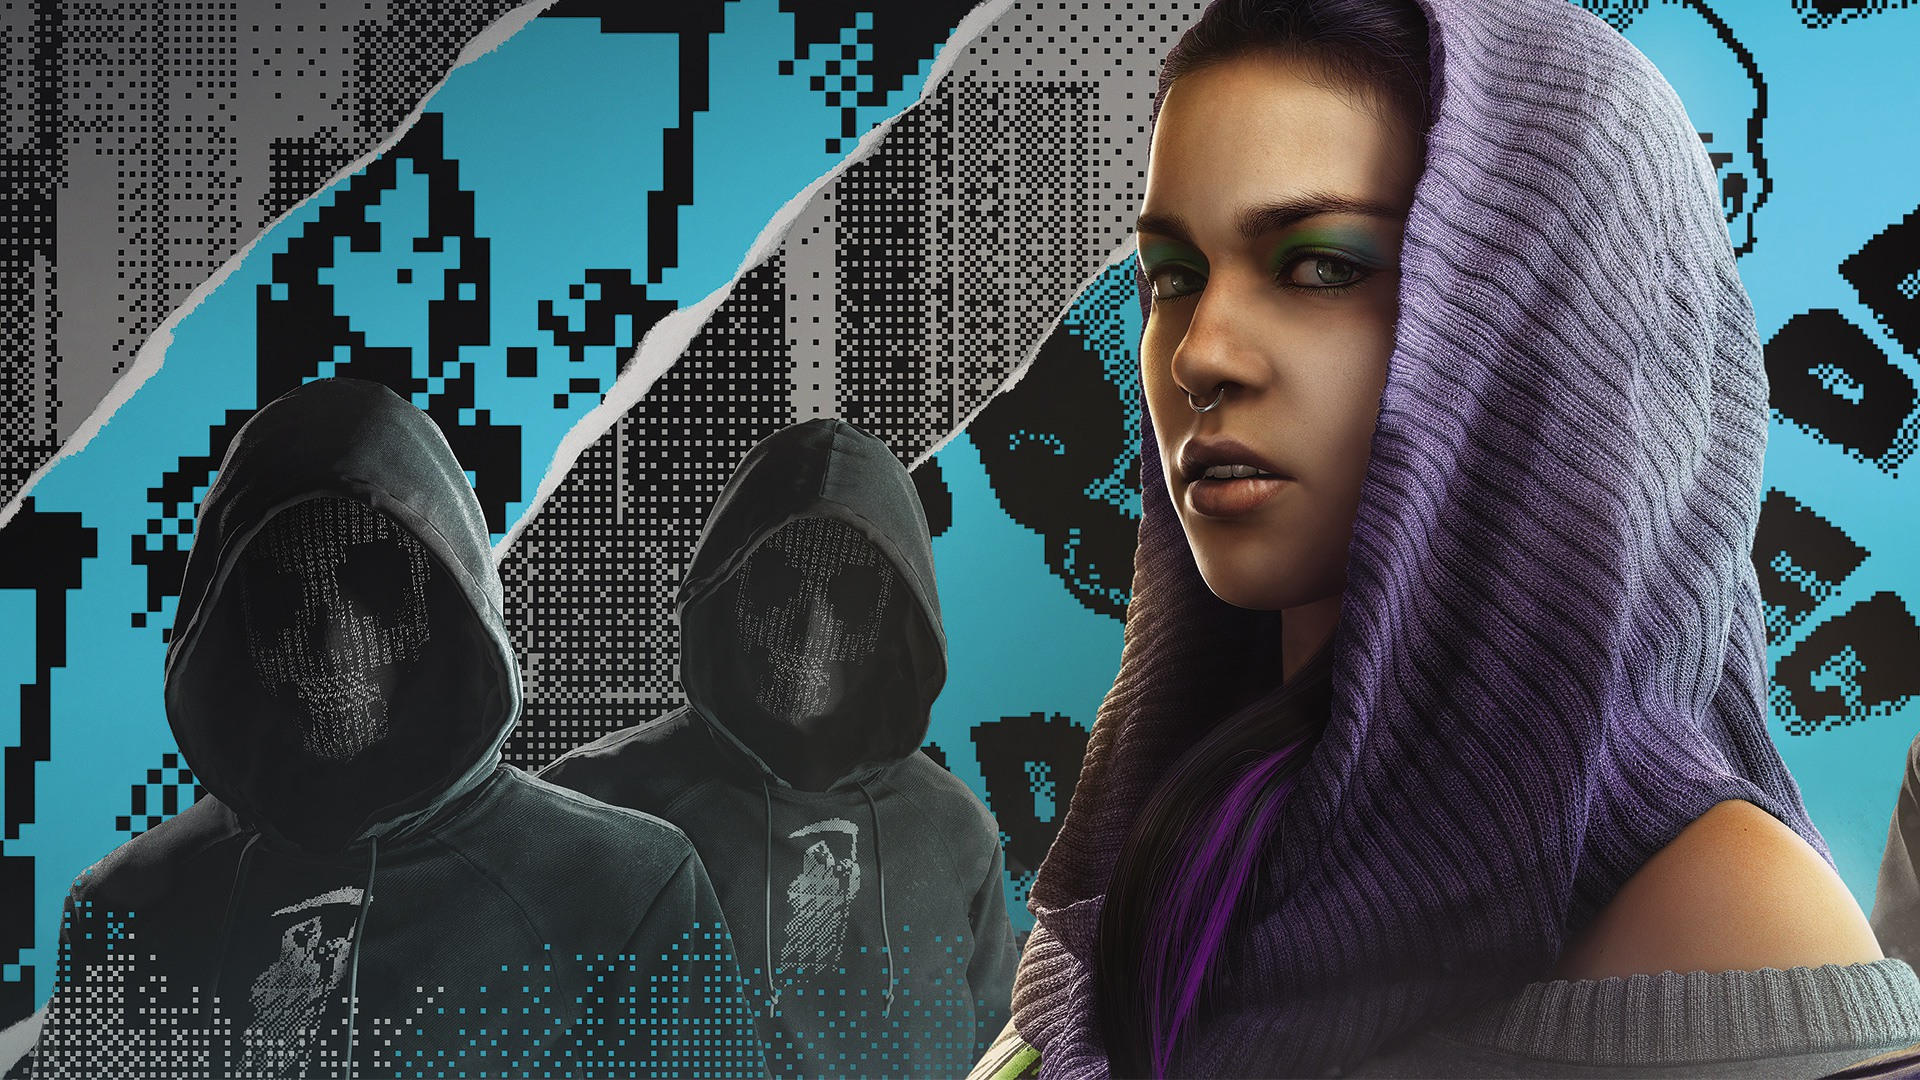 Sitara Watch Dogs 2 Hd Games 4k Wallpapers Images Backgrounds